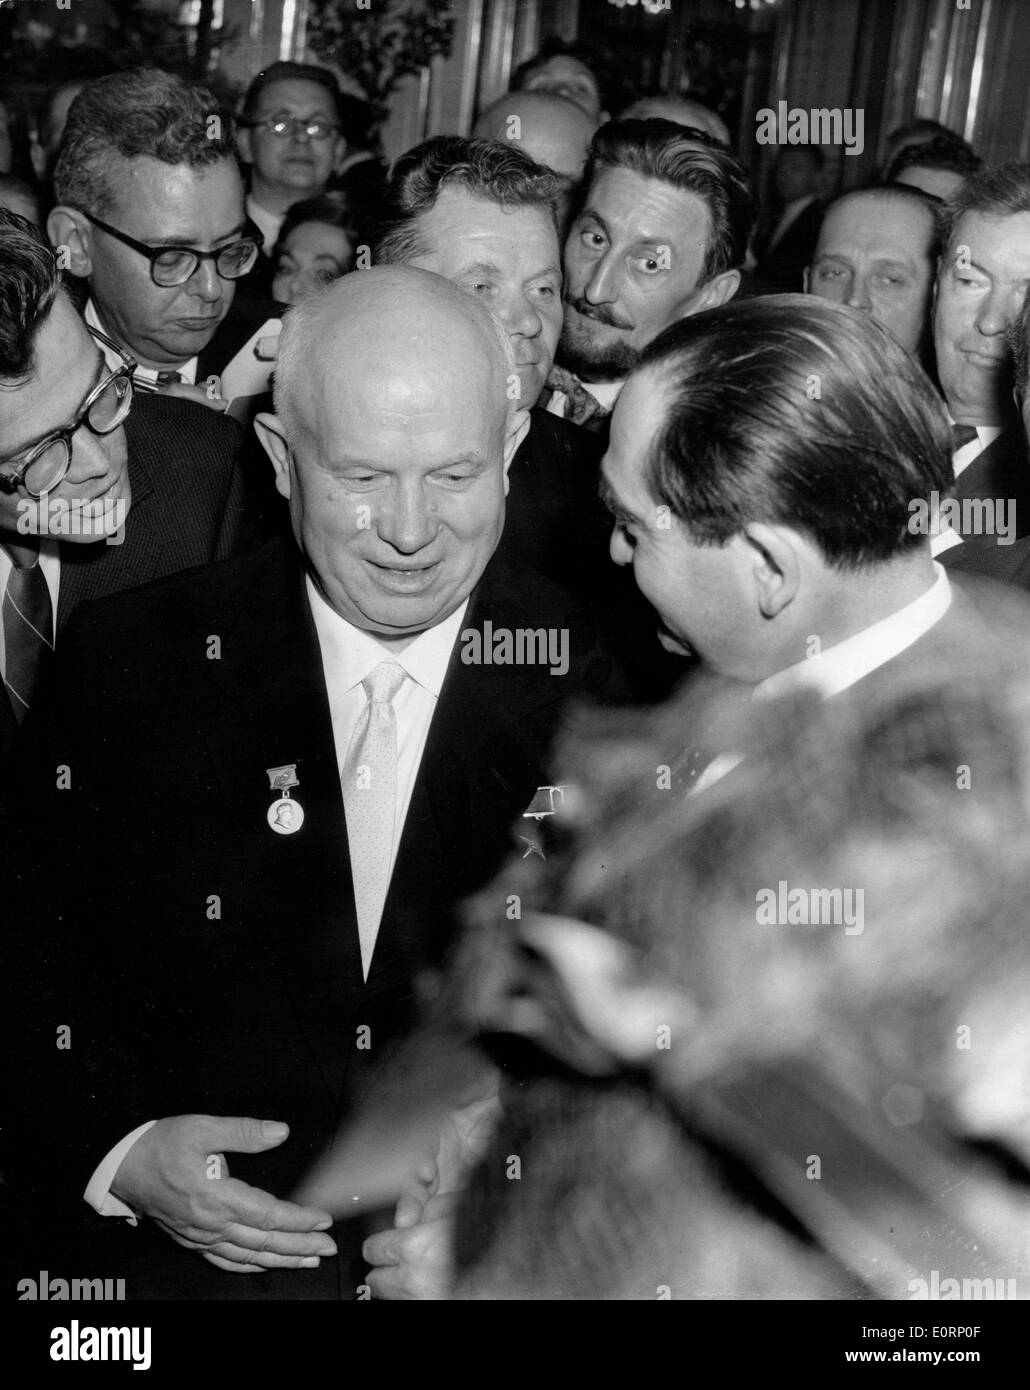 Prime Minister Nikita Khrushchev at event at the Soviet Embassy - Stock Image